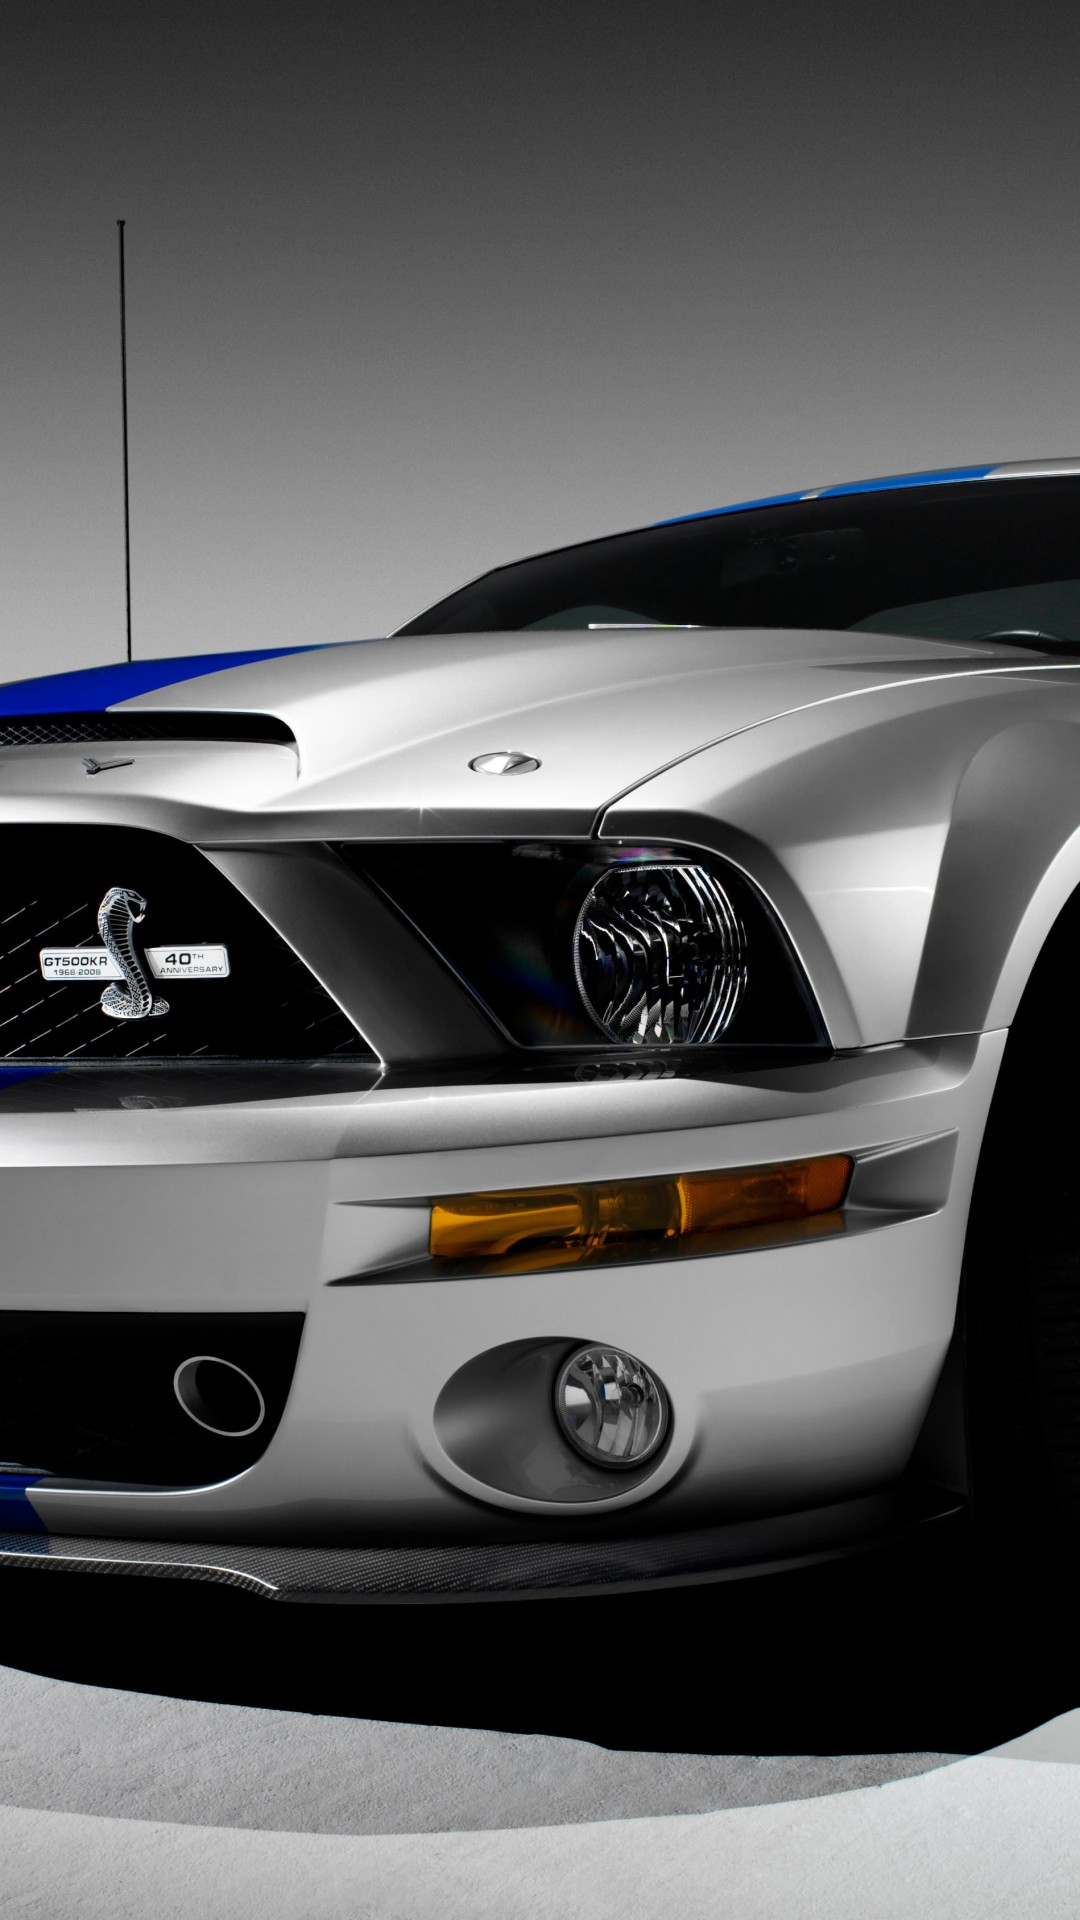 Shelby Mustang GT500KR Wallpaper for Motorola Moto X